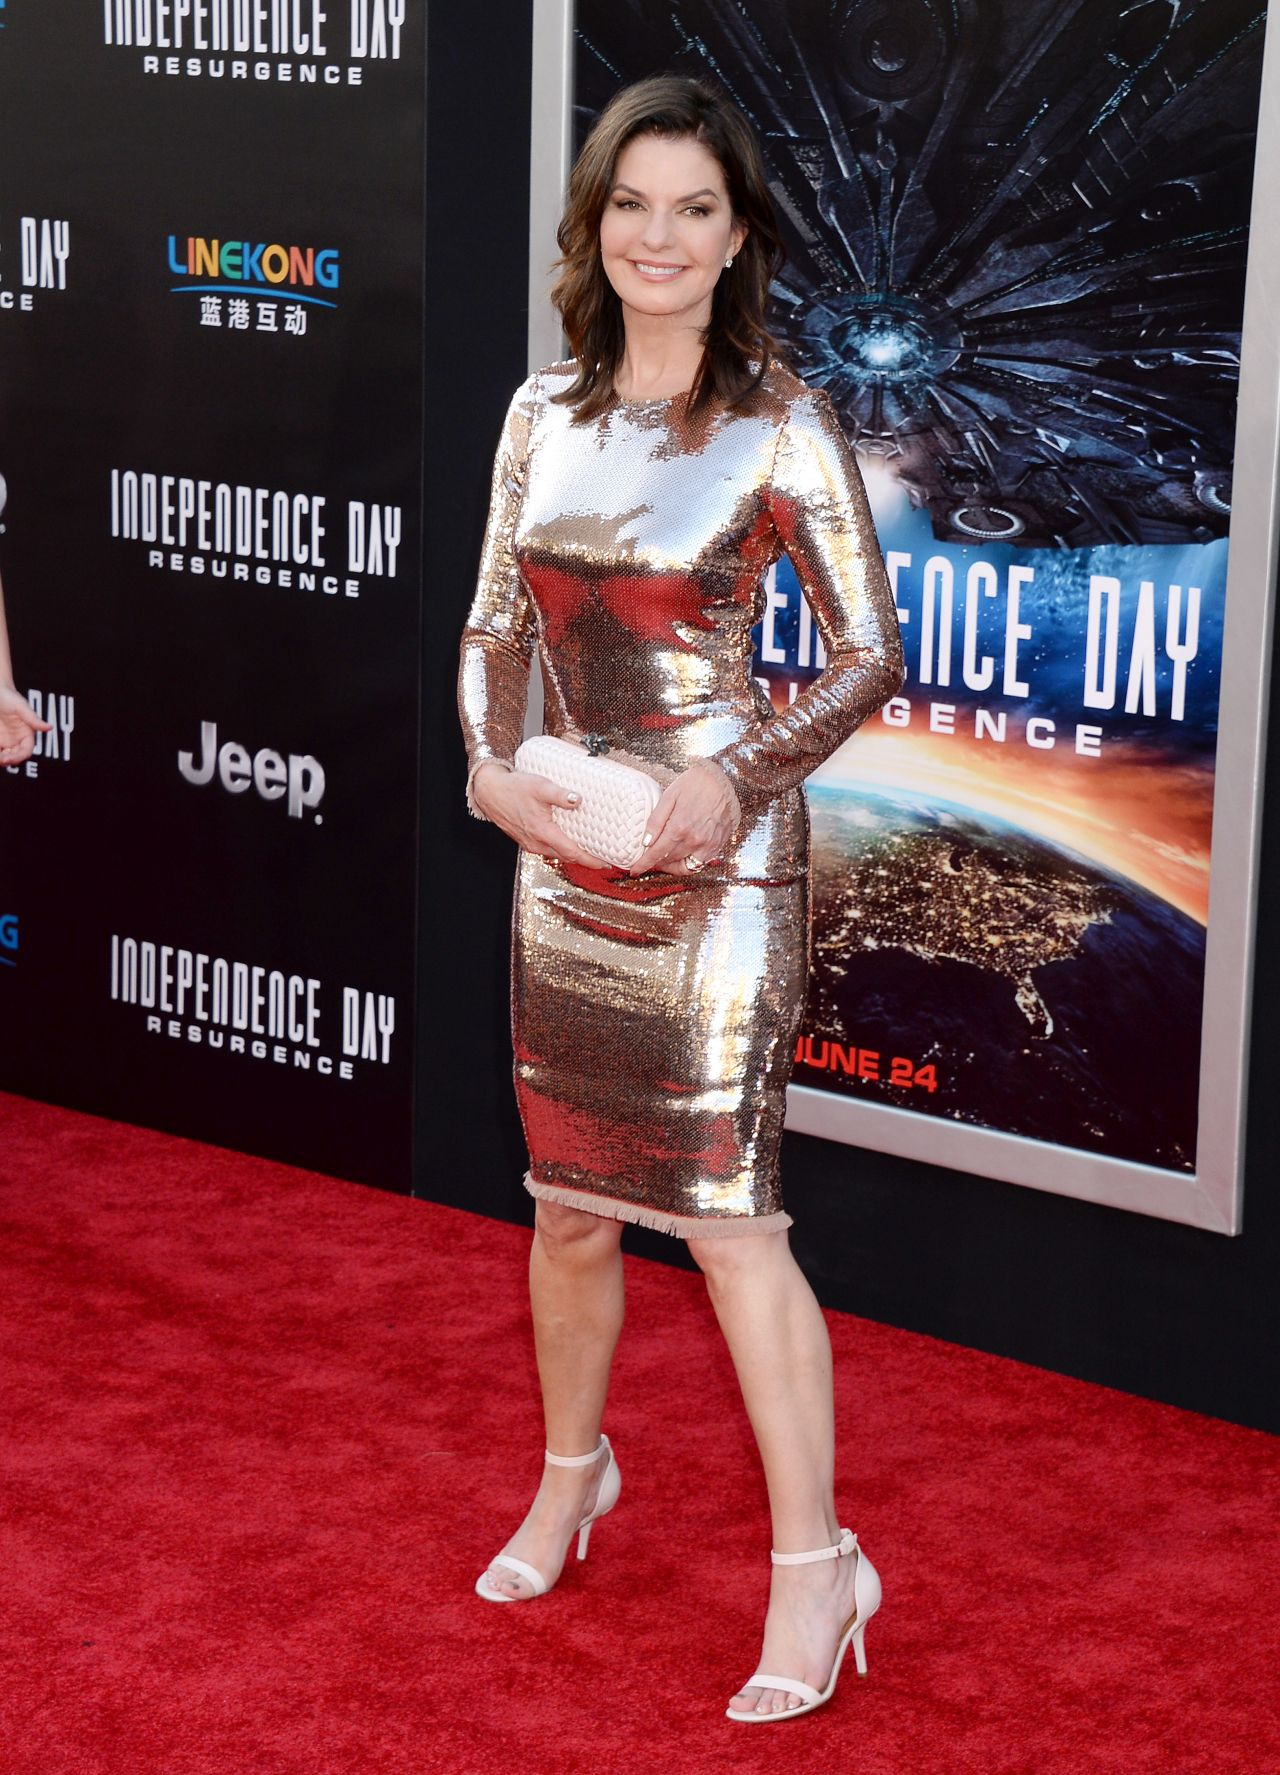 Sela Ward Independence Day Resurgence Premiere In